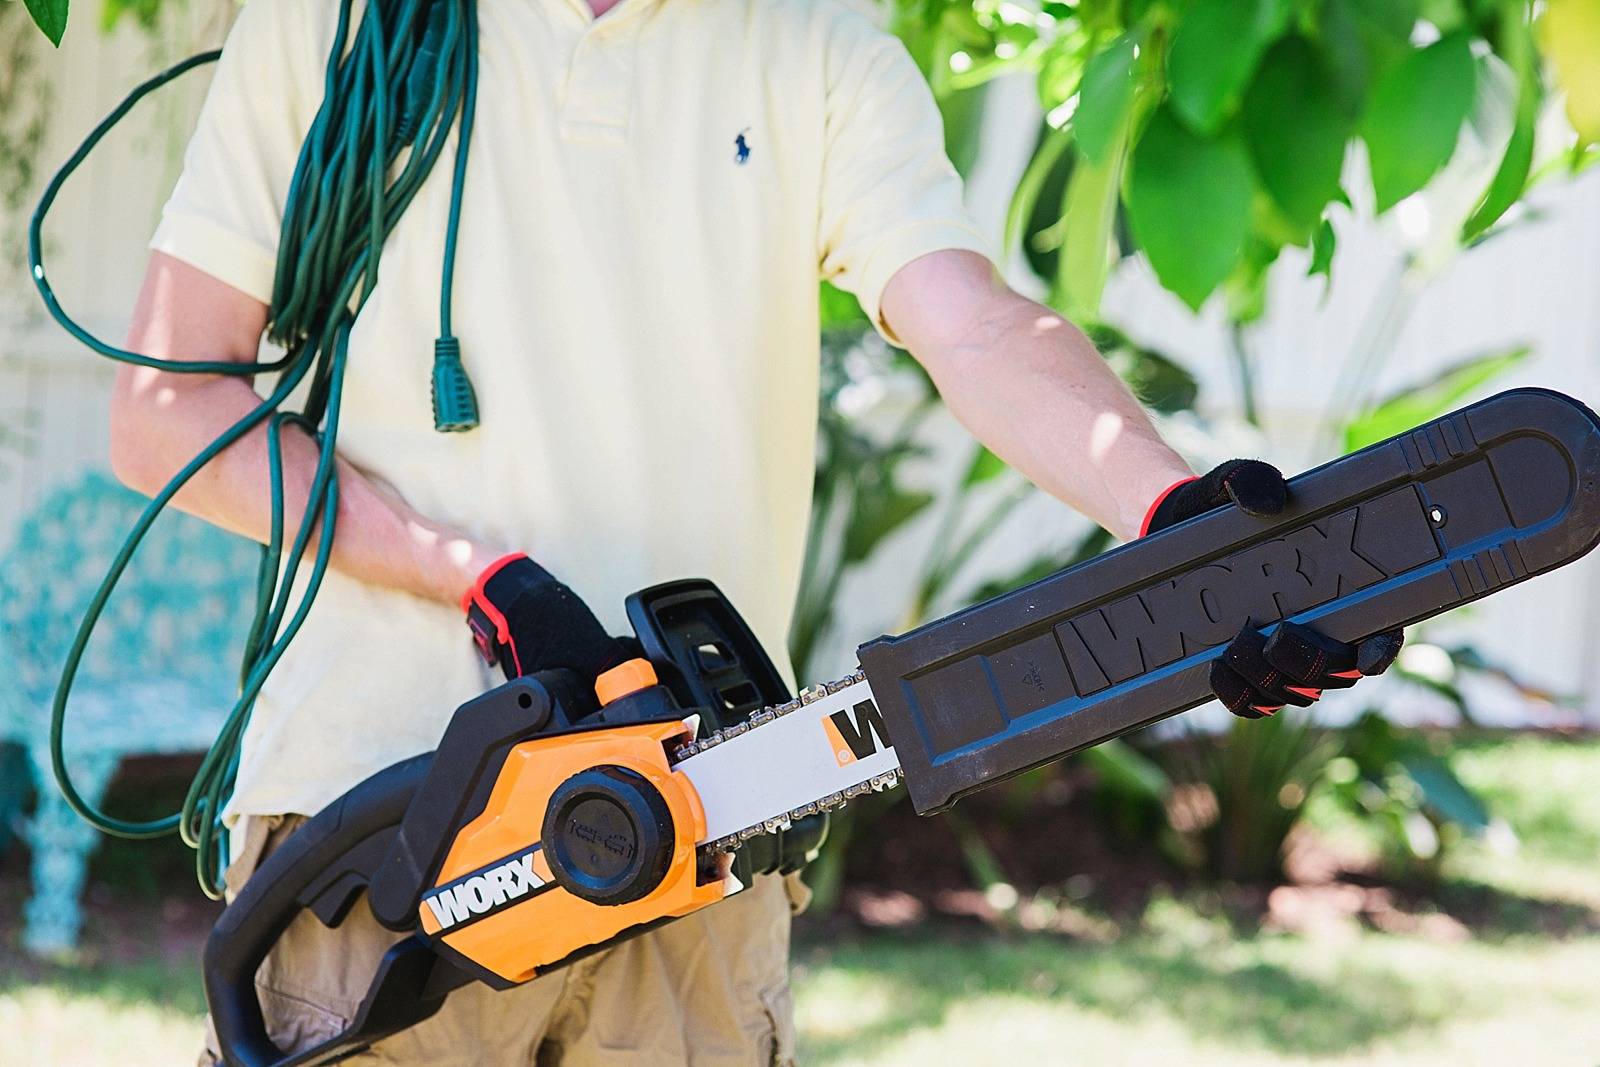 worx-chain-saw-review-gardening-blogger-home-diana-elizabeth-121a